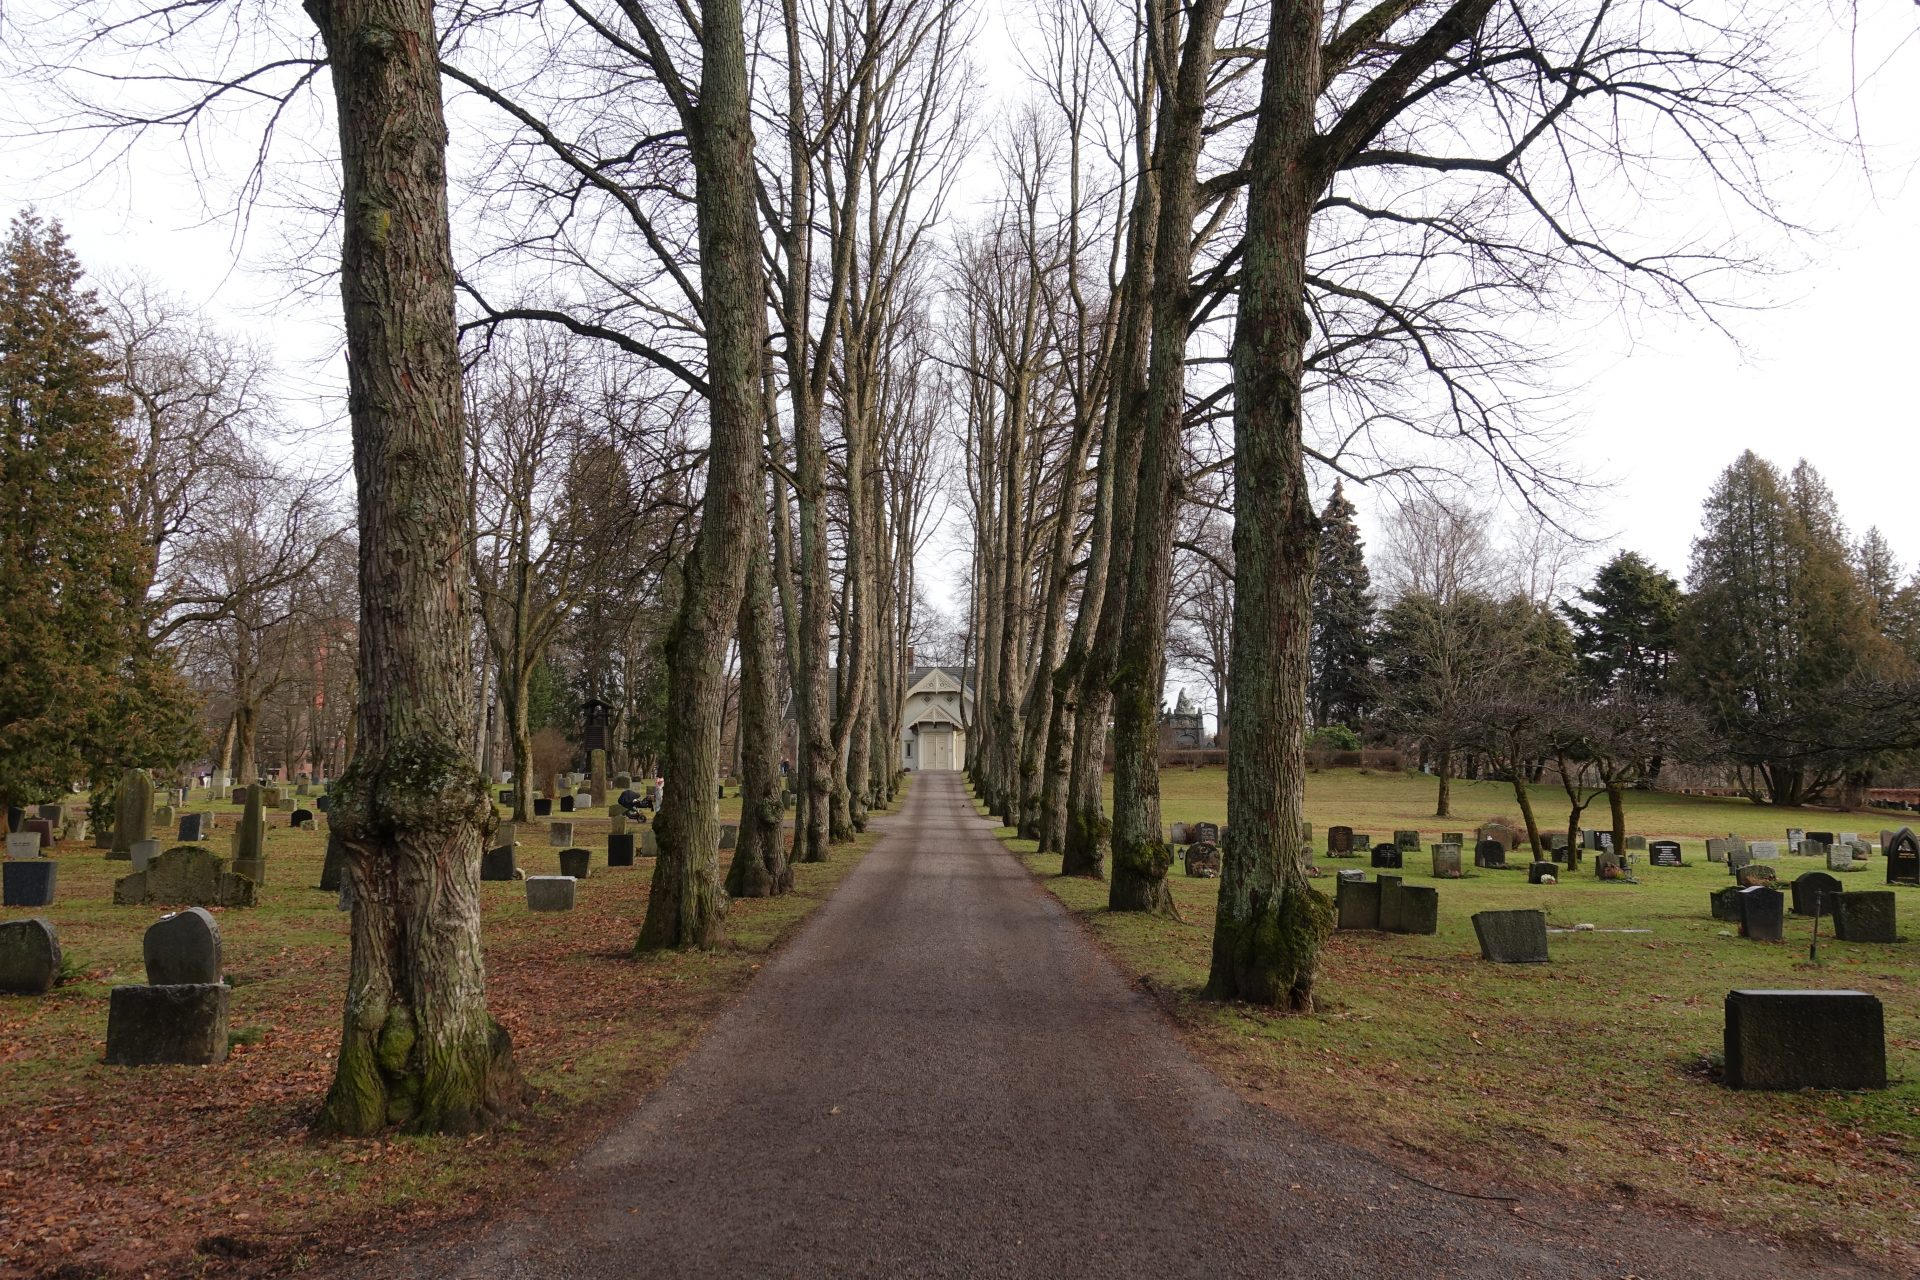 A picture of a pathway through a graveyard, lined either side with a row of trees and gravestones. At the end of the pathway is a wooden building.